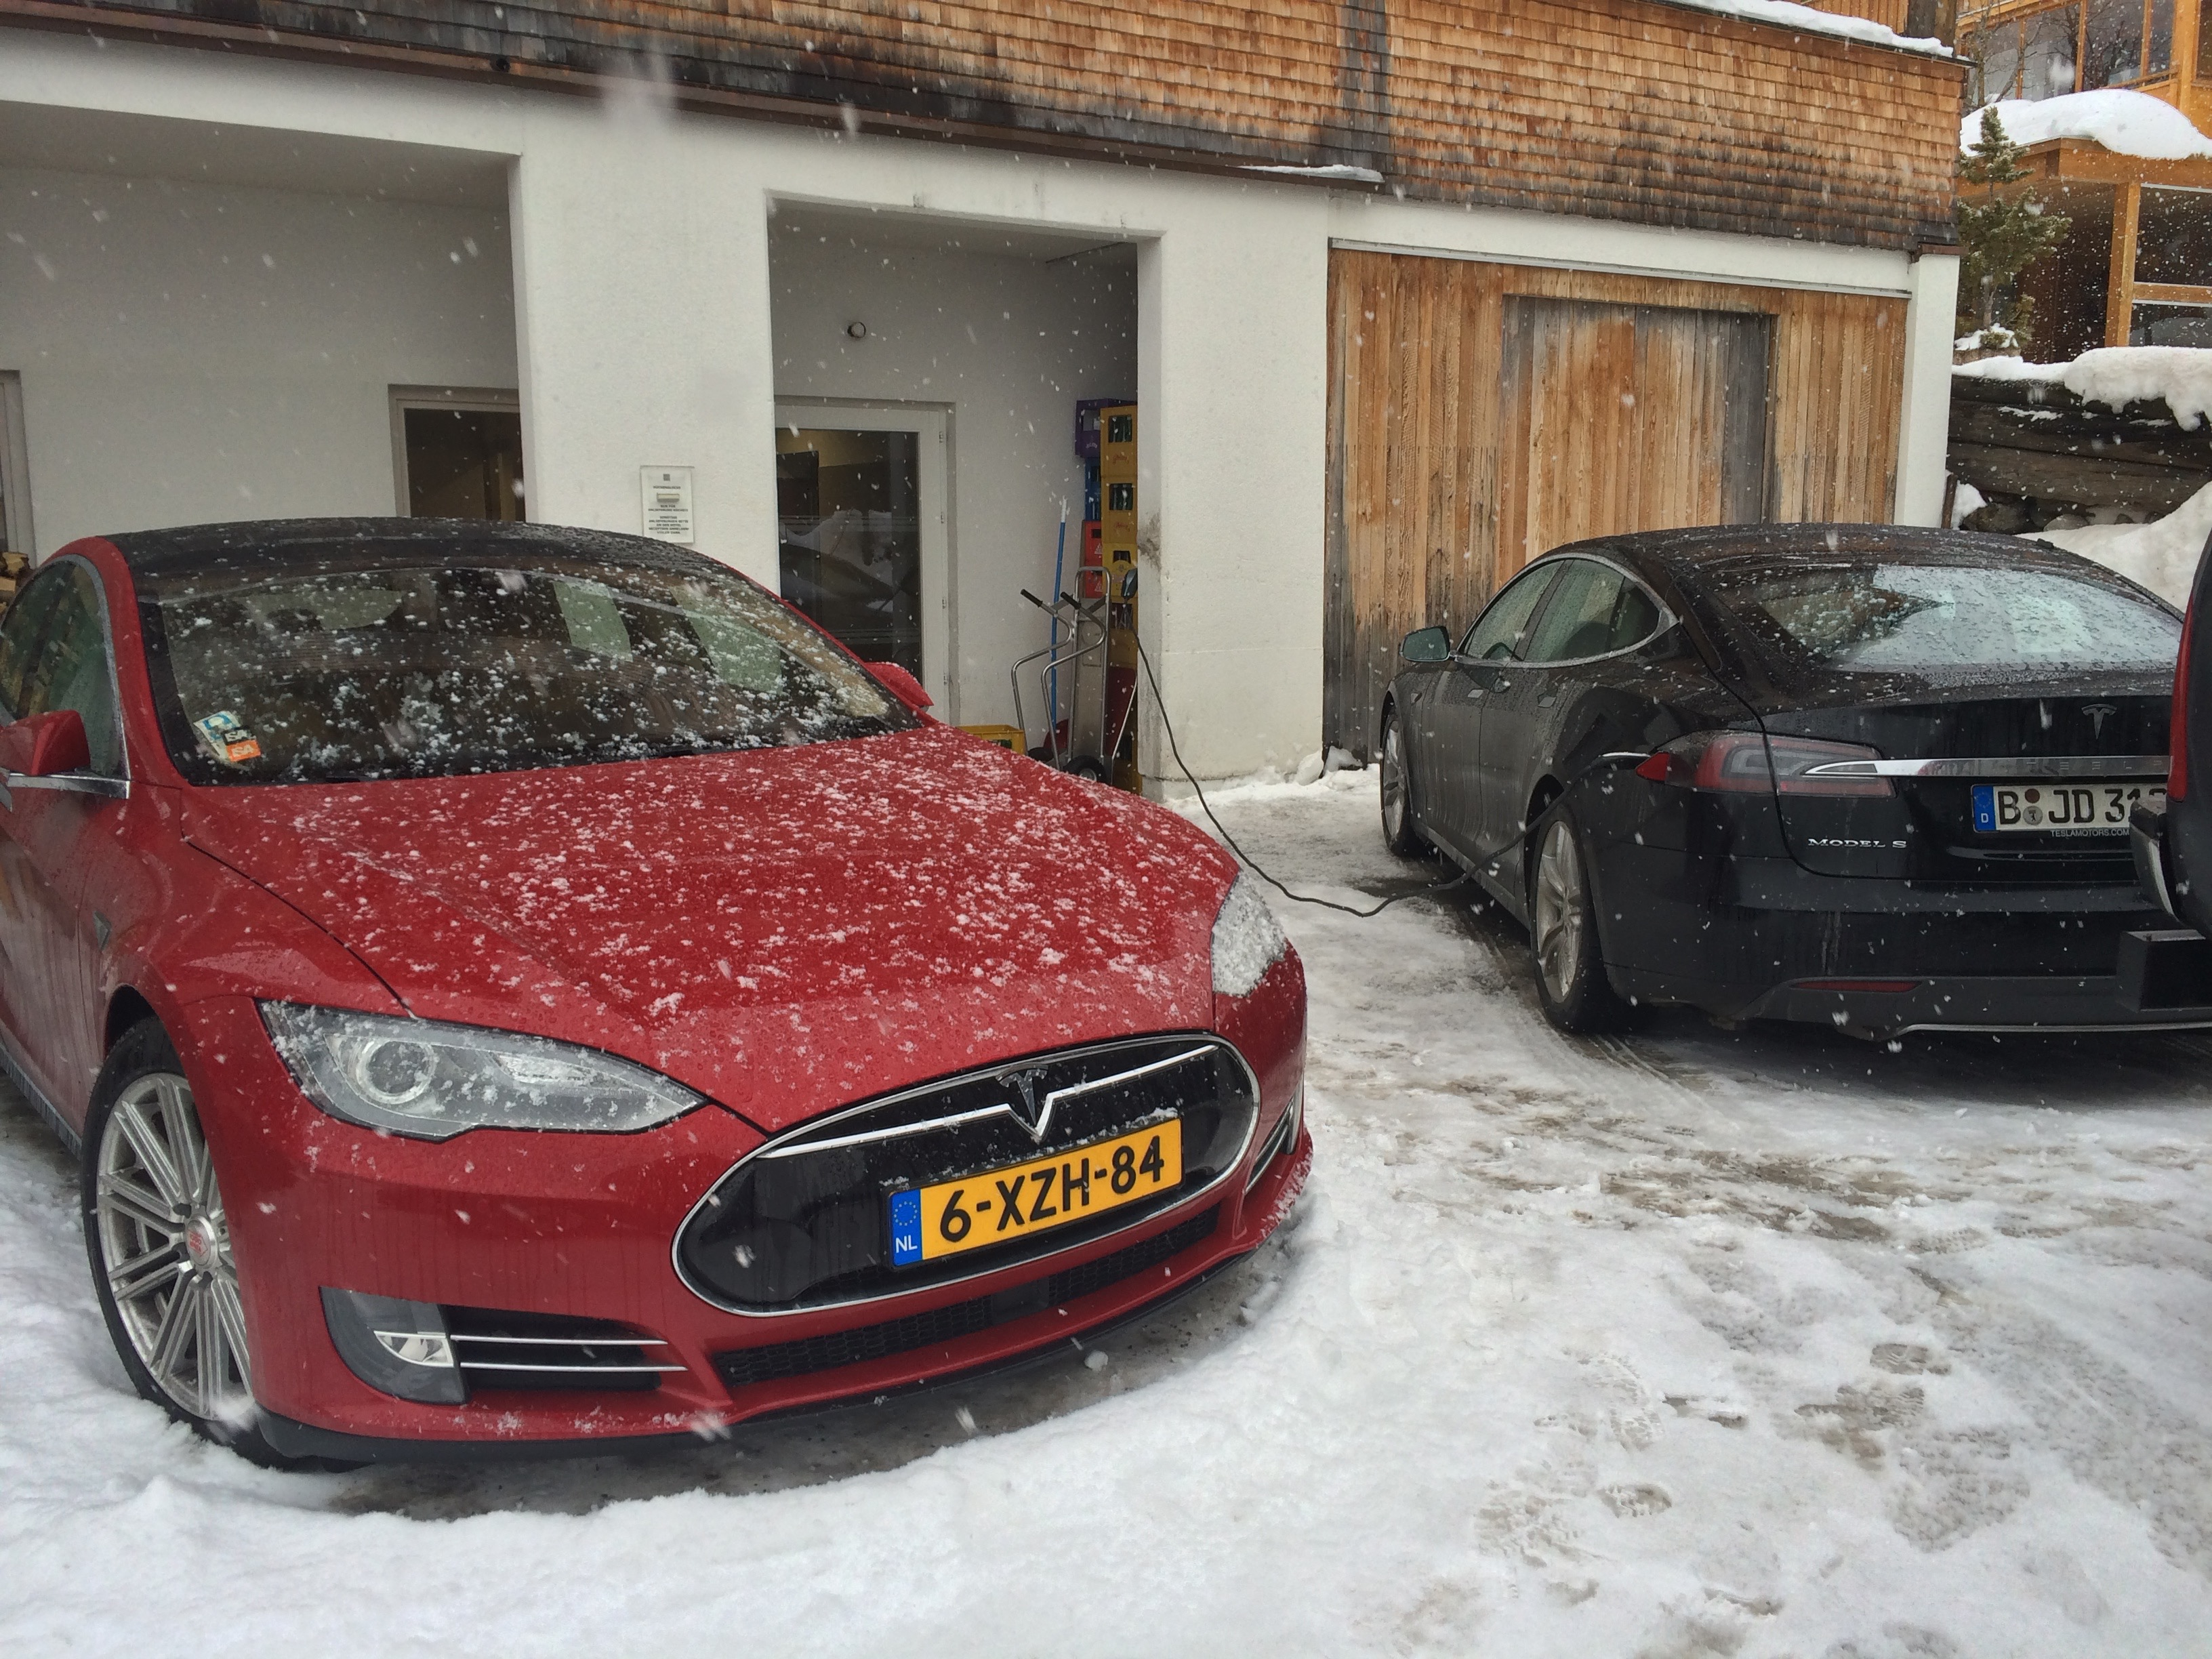 Dutch Tesla's skiing in Austria